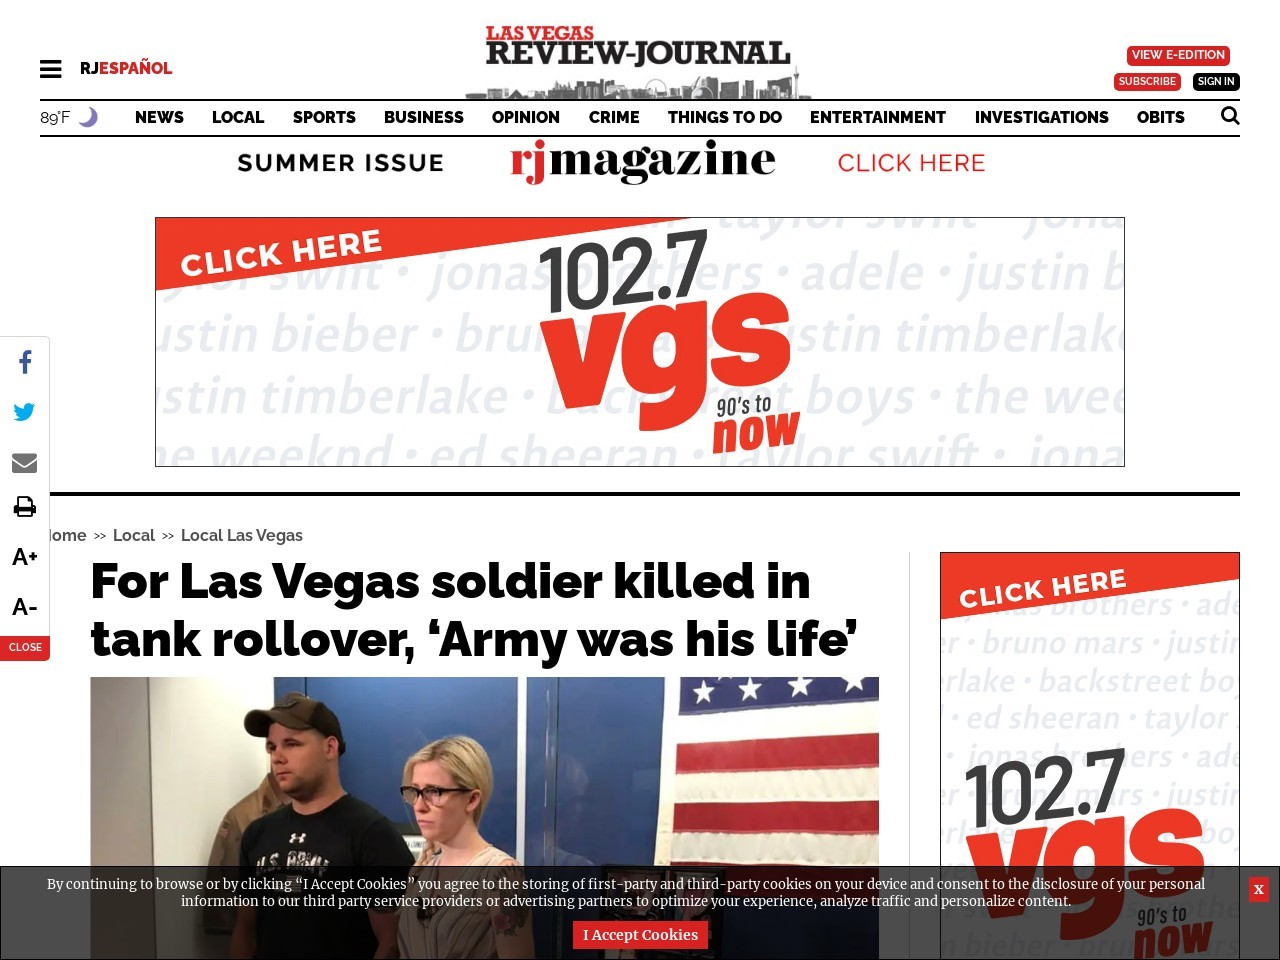 For Las Vegas soldier killed in tank rollover, 'Army was his life'